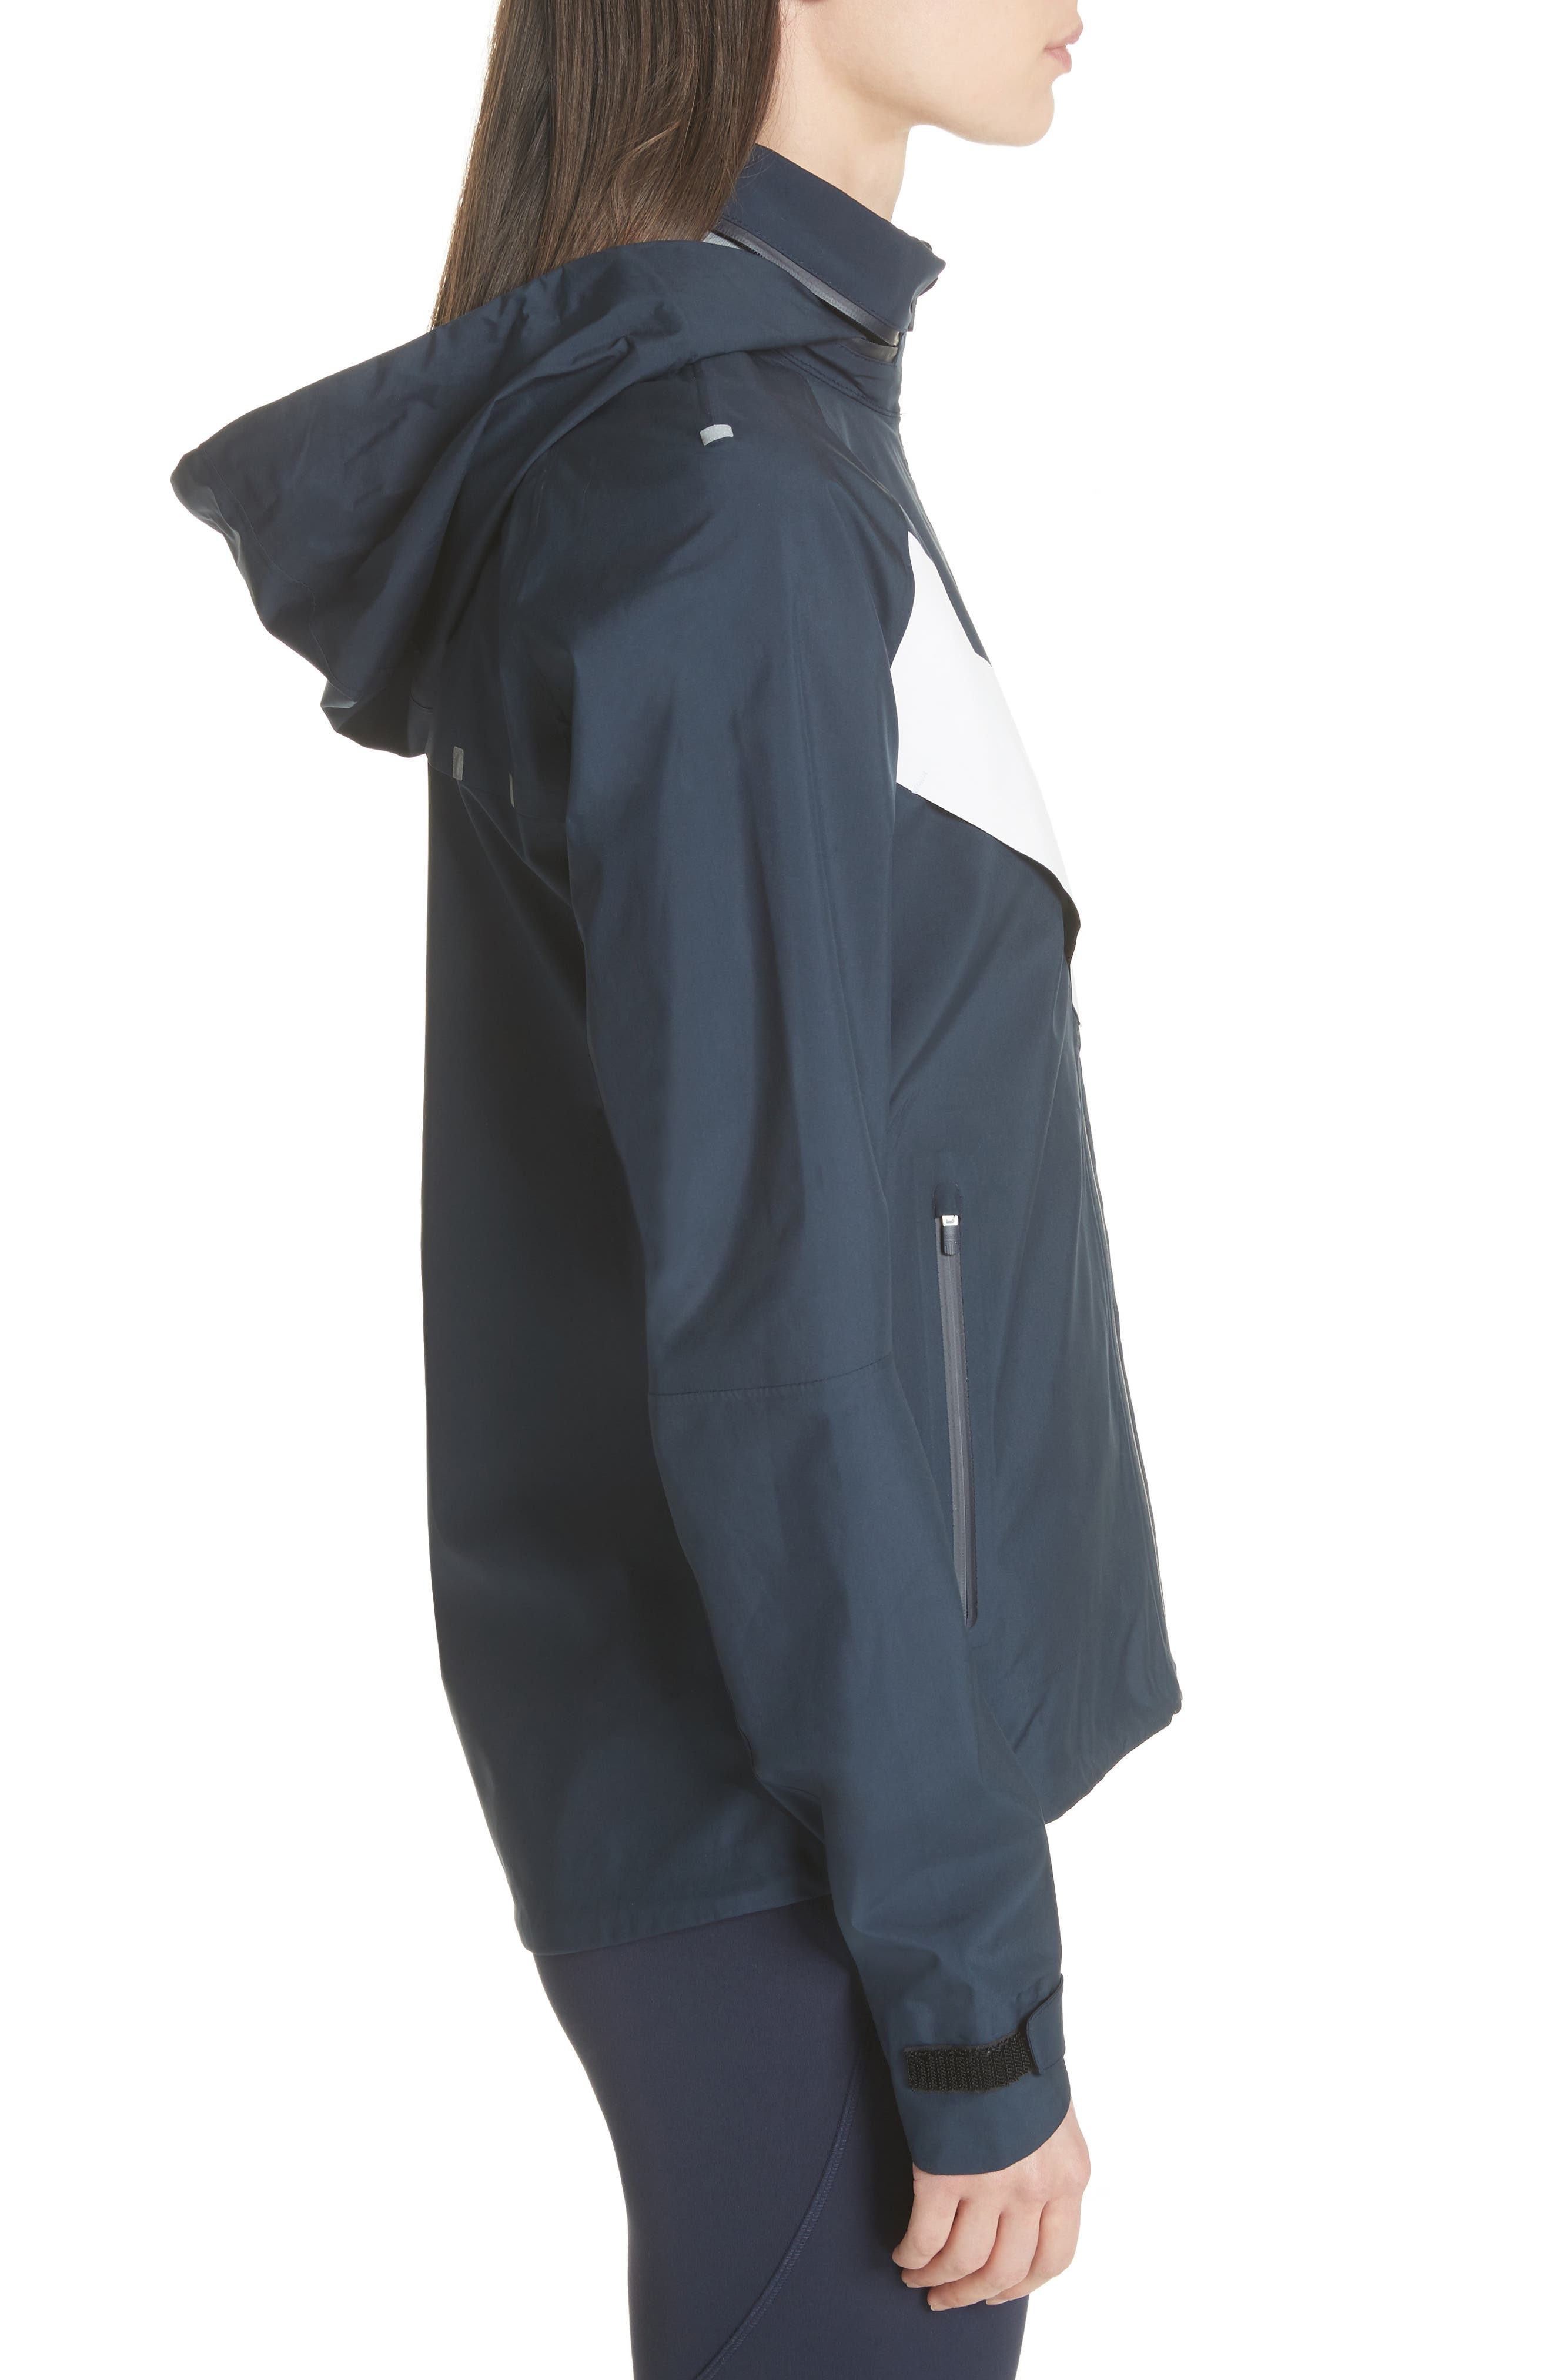 All Weather Run Jacket,                             Alternate thumbnail 4, color,                             Tory Navy/ White Snow